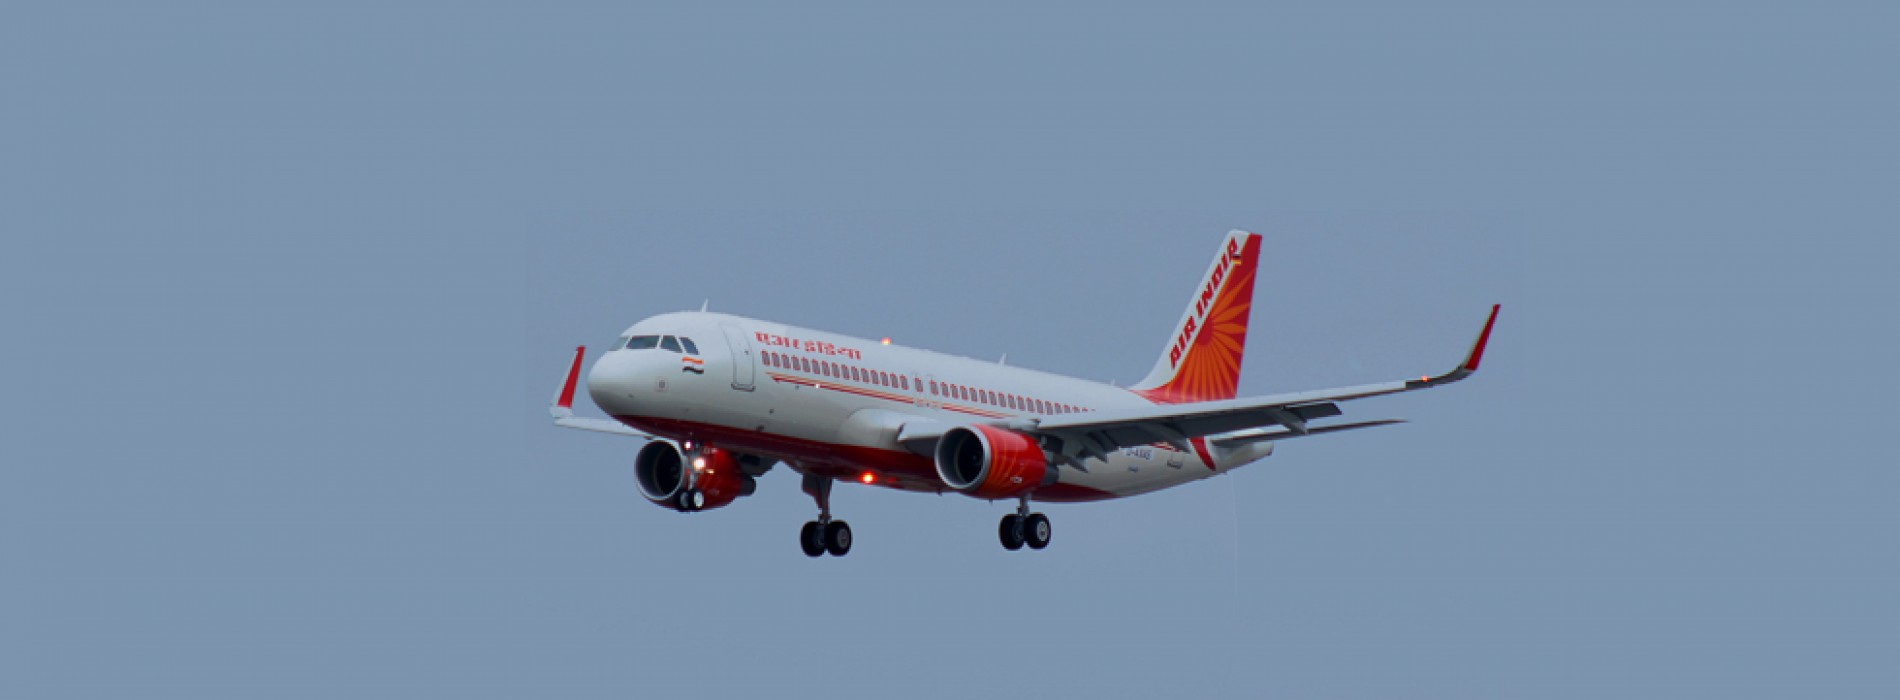 Air India is in profit, says Jayant Sinha